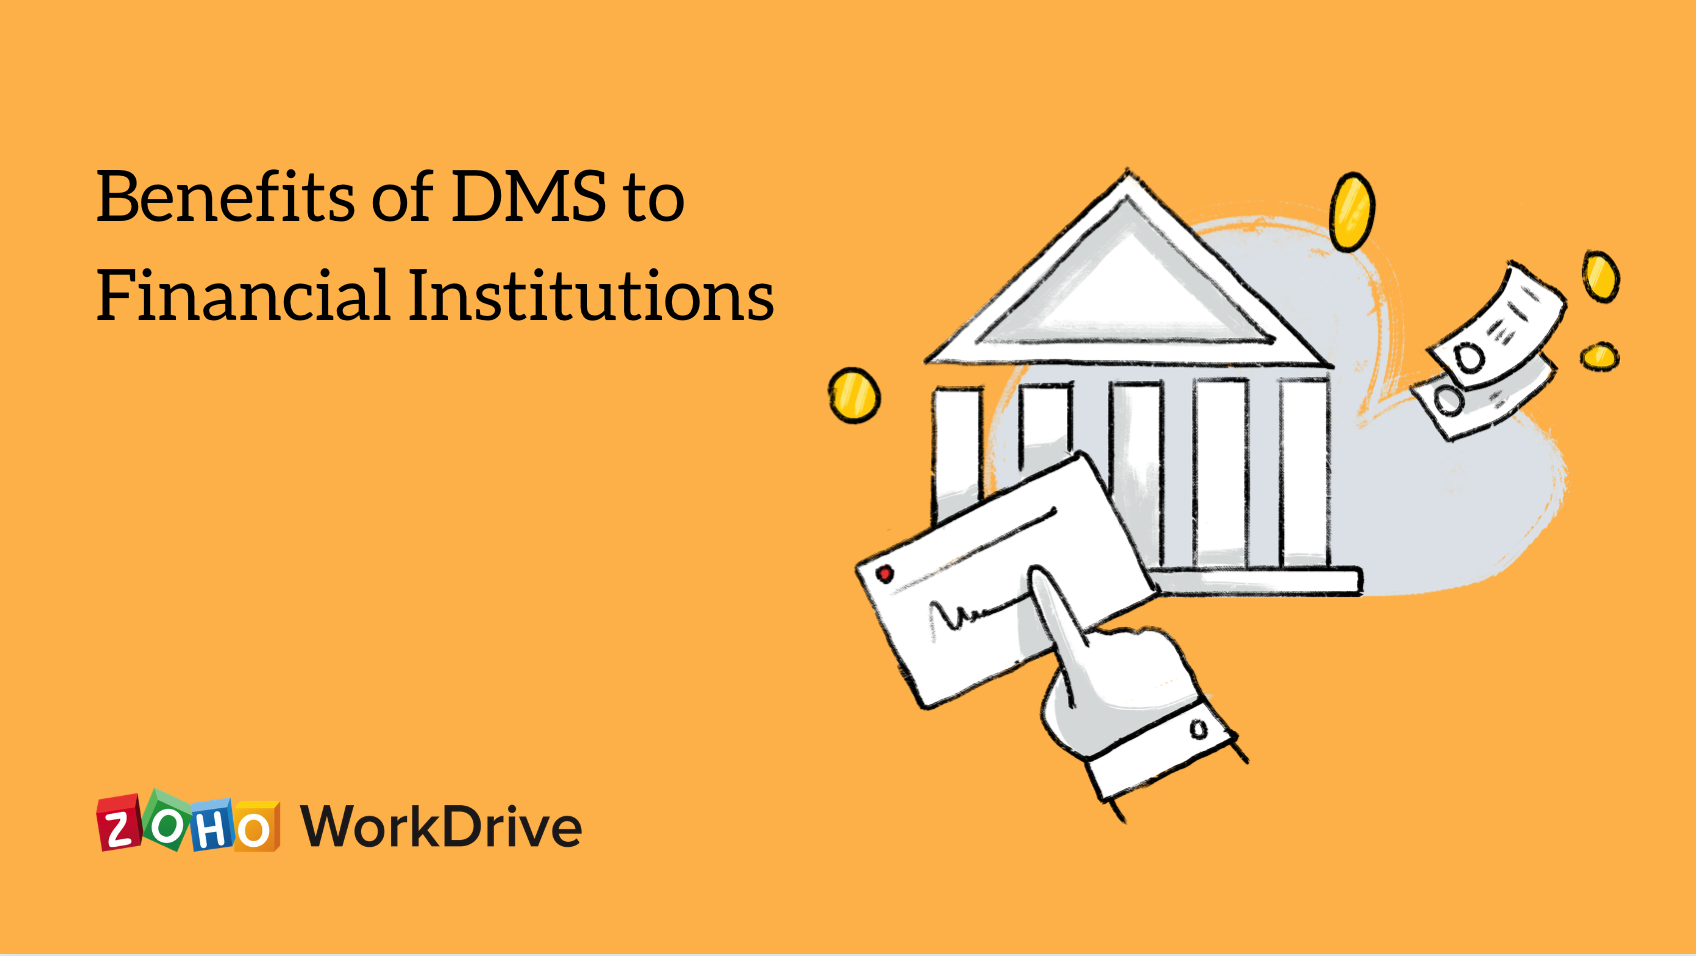 Benefits of DMS to Financial Institutions